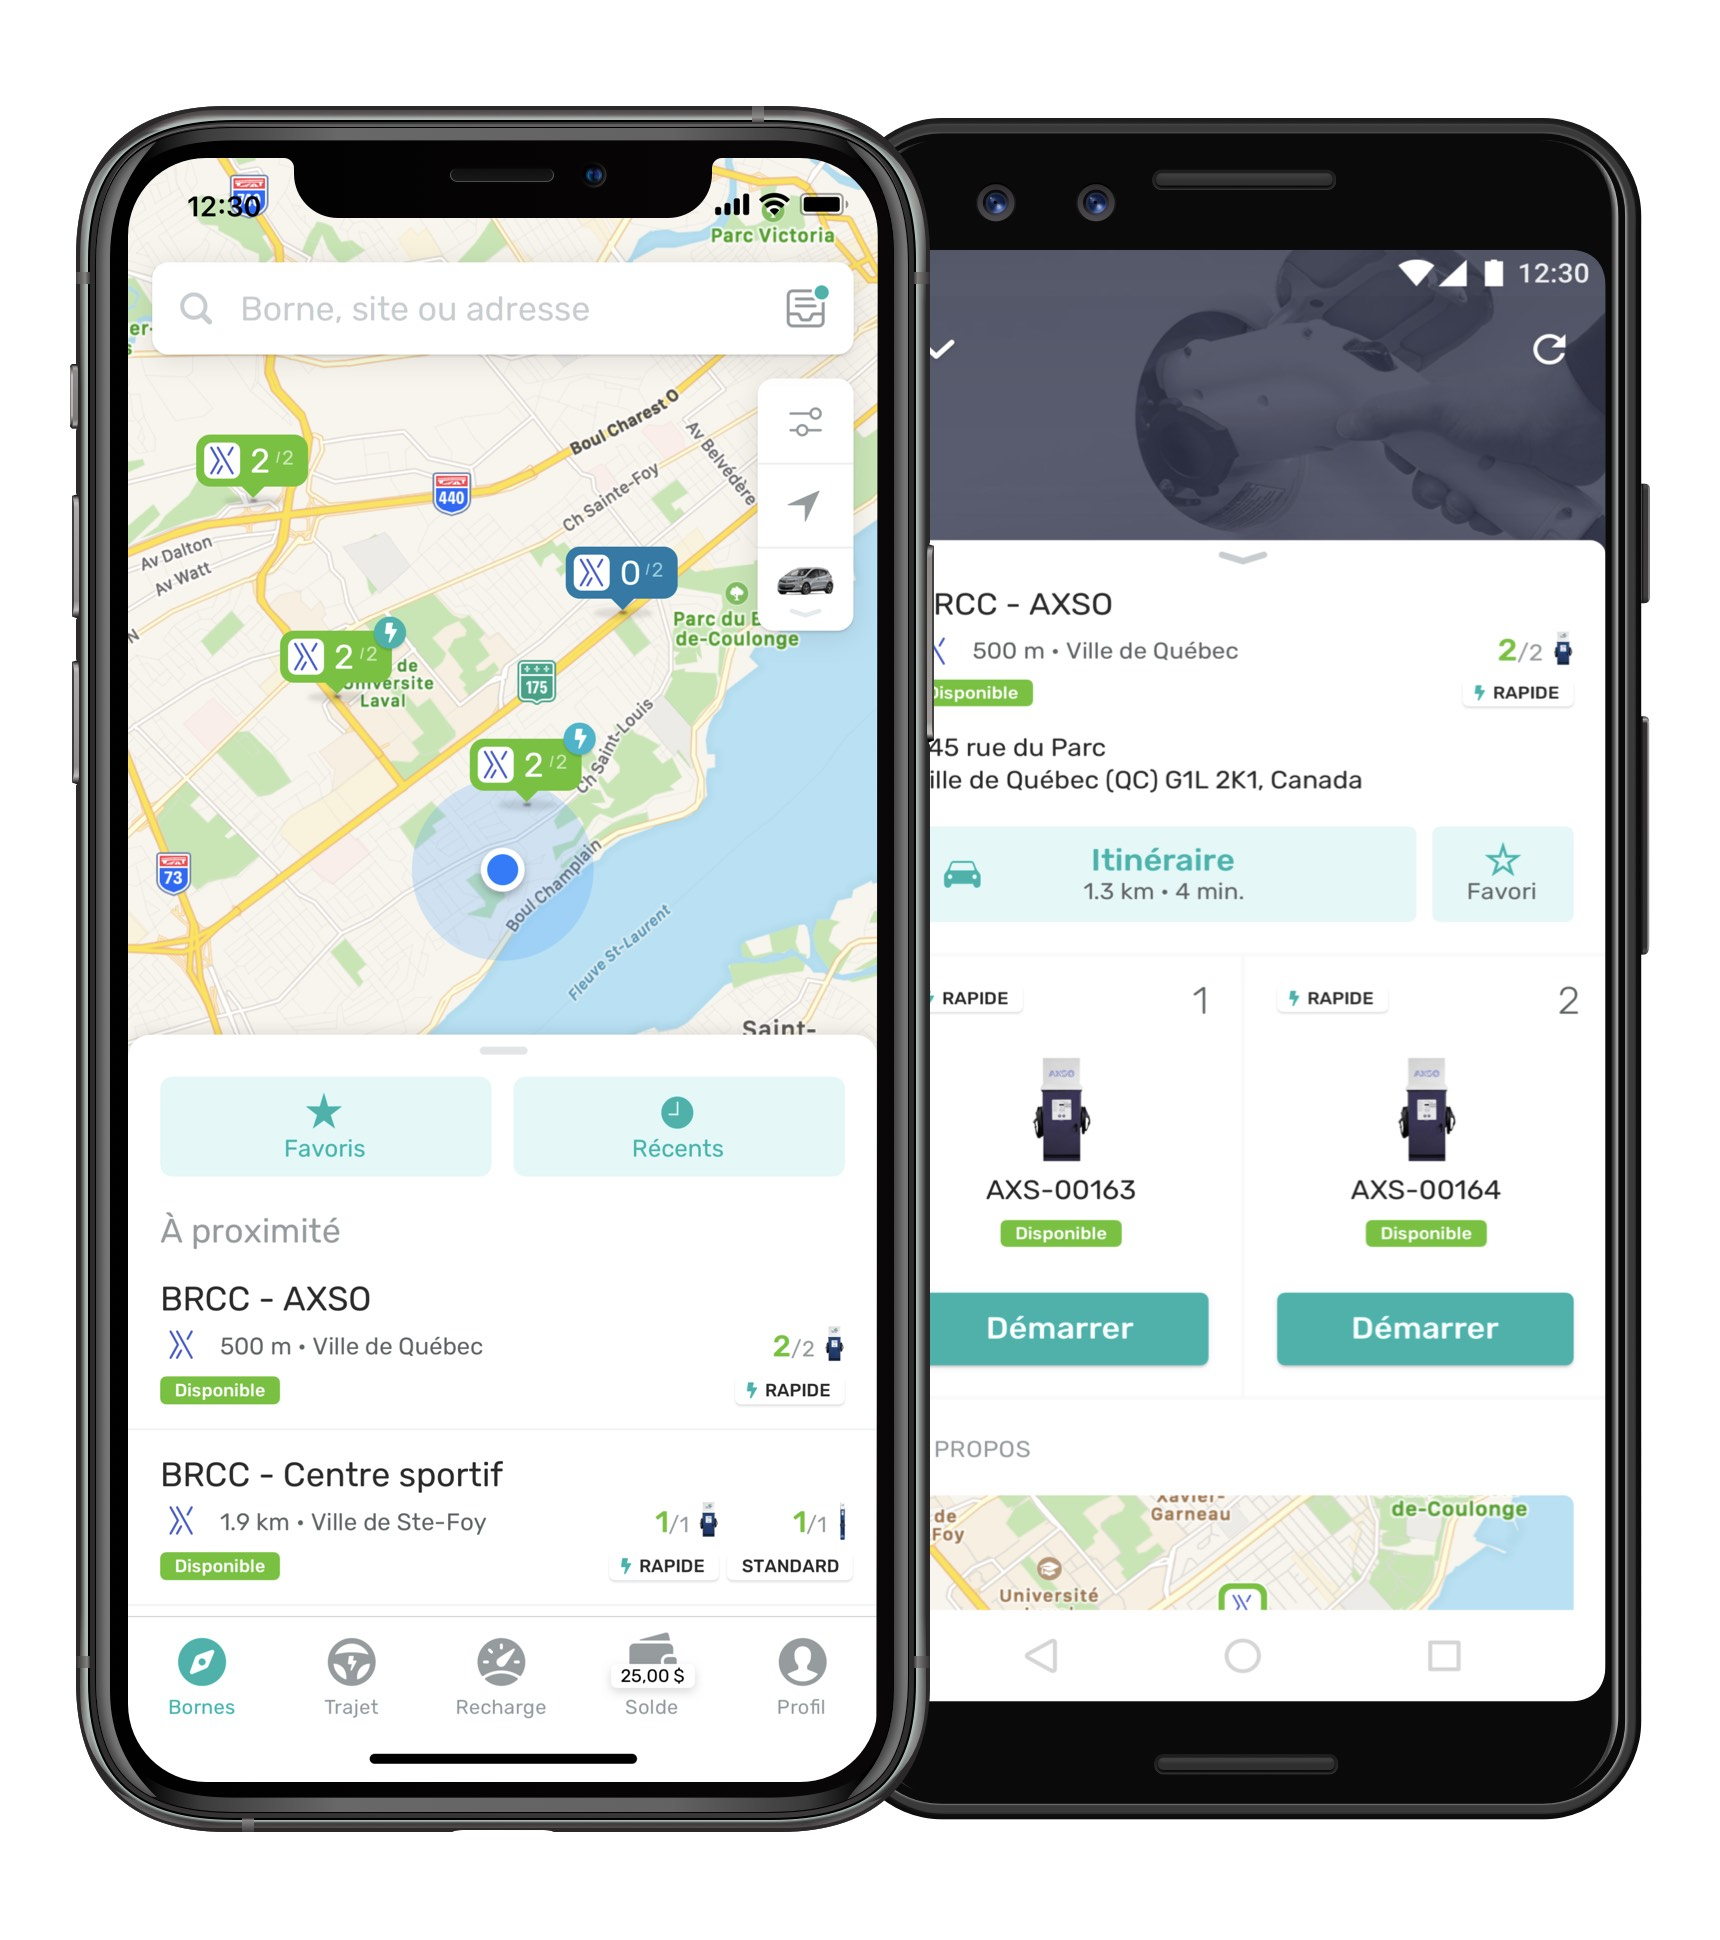 Screenshots of the applications showing charging stations nearby.